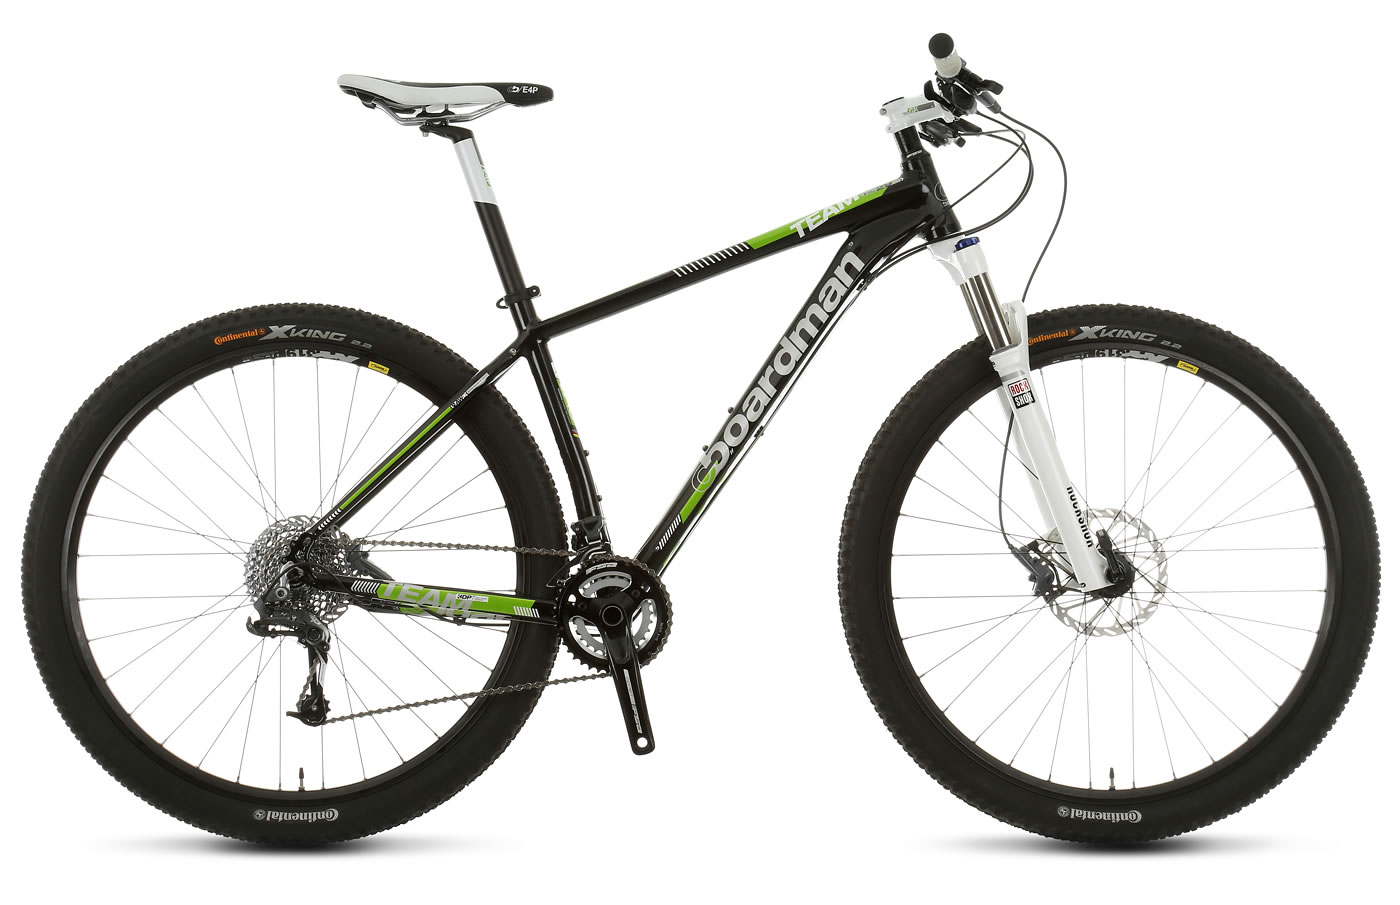 e6d3d44340a Boardman MTB TEAM Hardtail 29er 2014 review - The Bike List